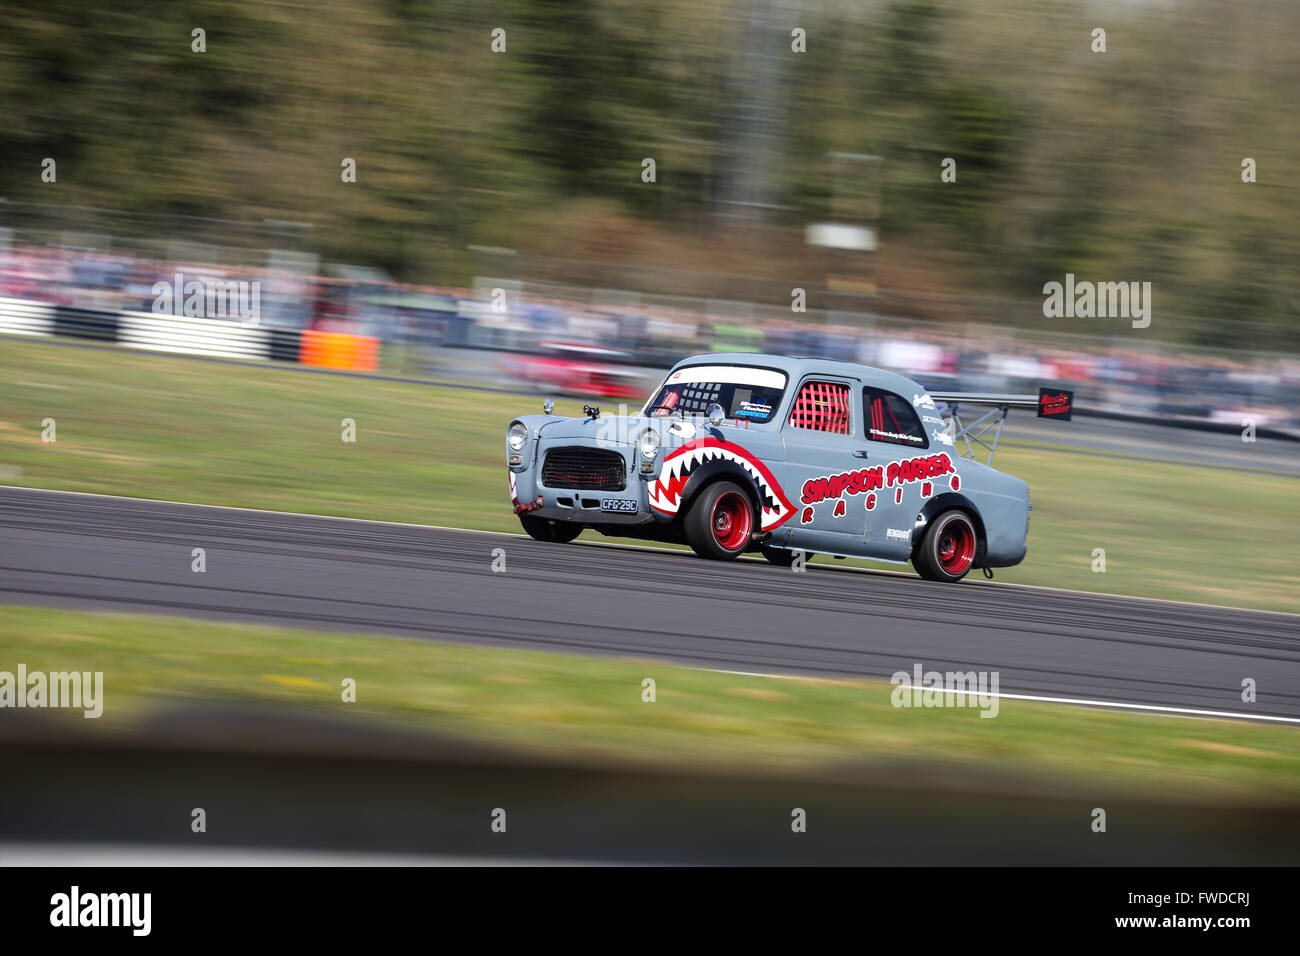 A drift car on track at Castle Combe Circuit - Stock Image